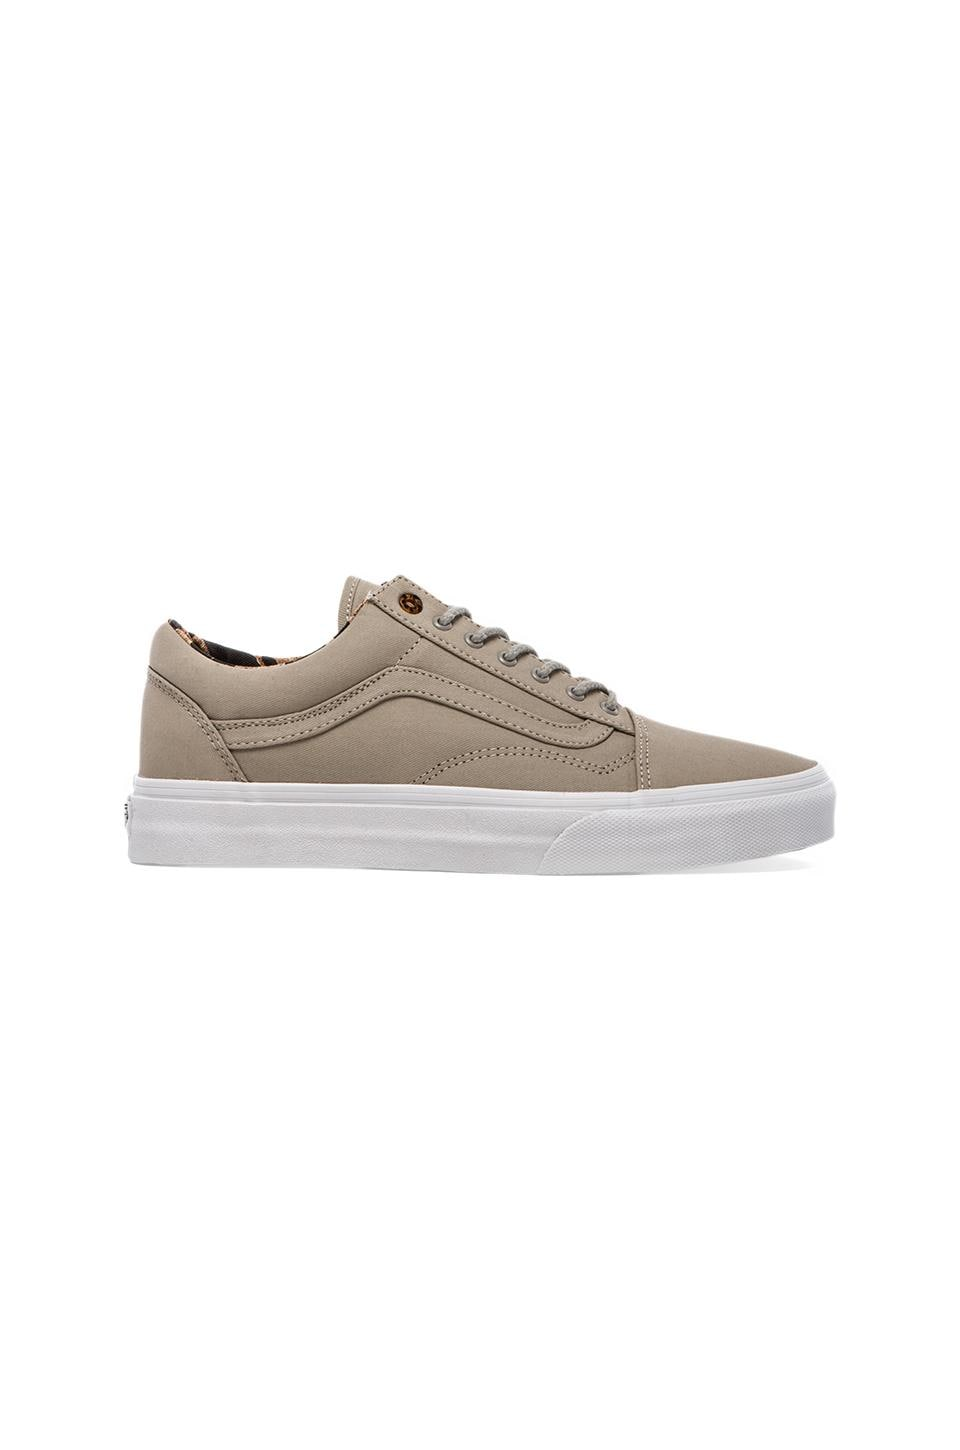 Vans California Old Skool Reissue Coated Twill in Taupe